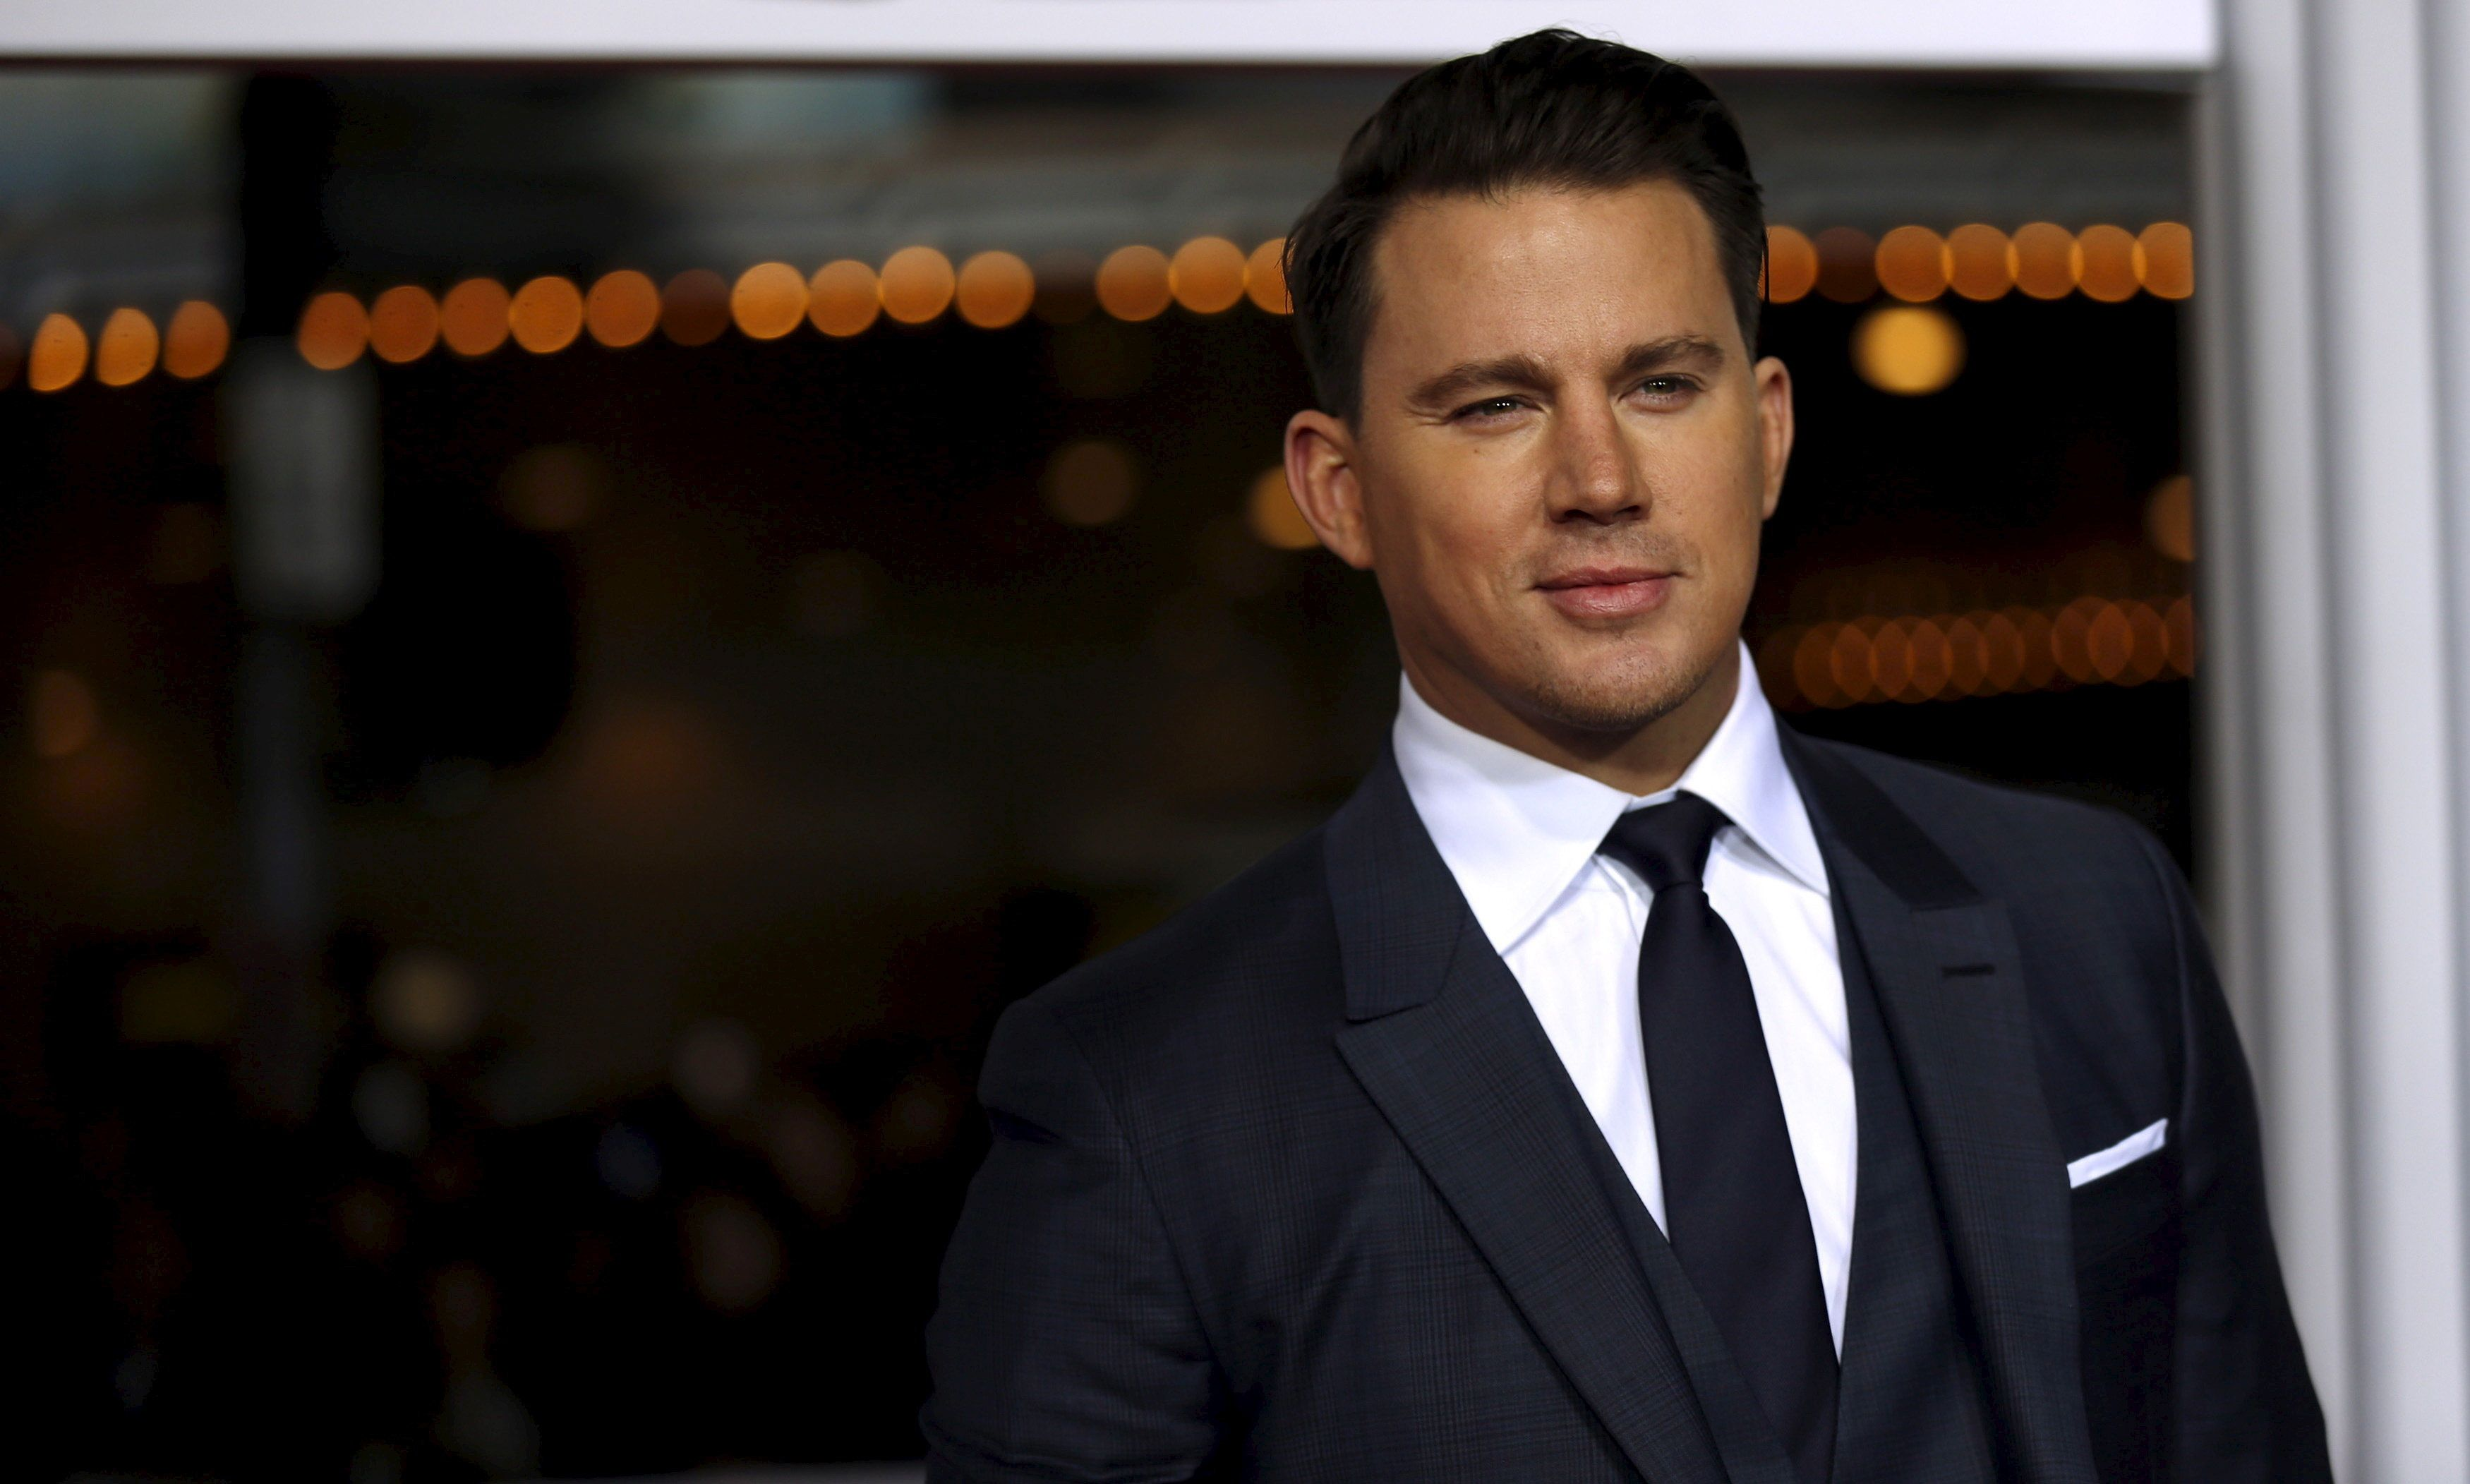 """Cast member Channing Tatum poses at the premiere of """"Hail, Caesar!"""" in Los Angeles, California February 1, 2016. The movie opens in the U.S. on February 5.   REUTERS/Mario Anzuoni"""